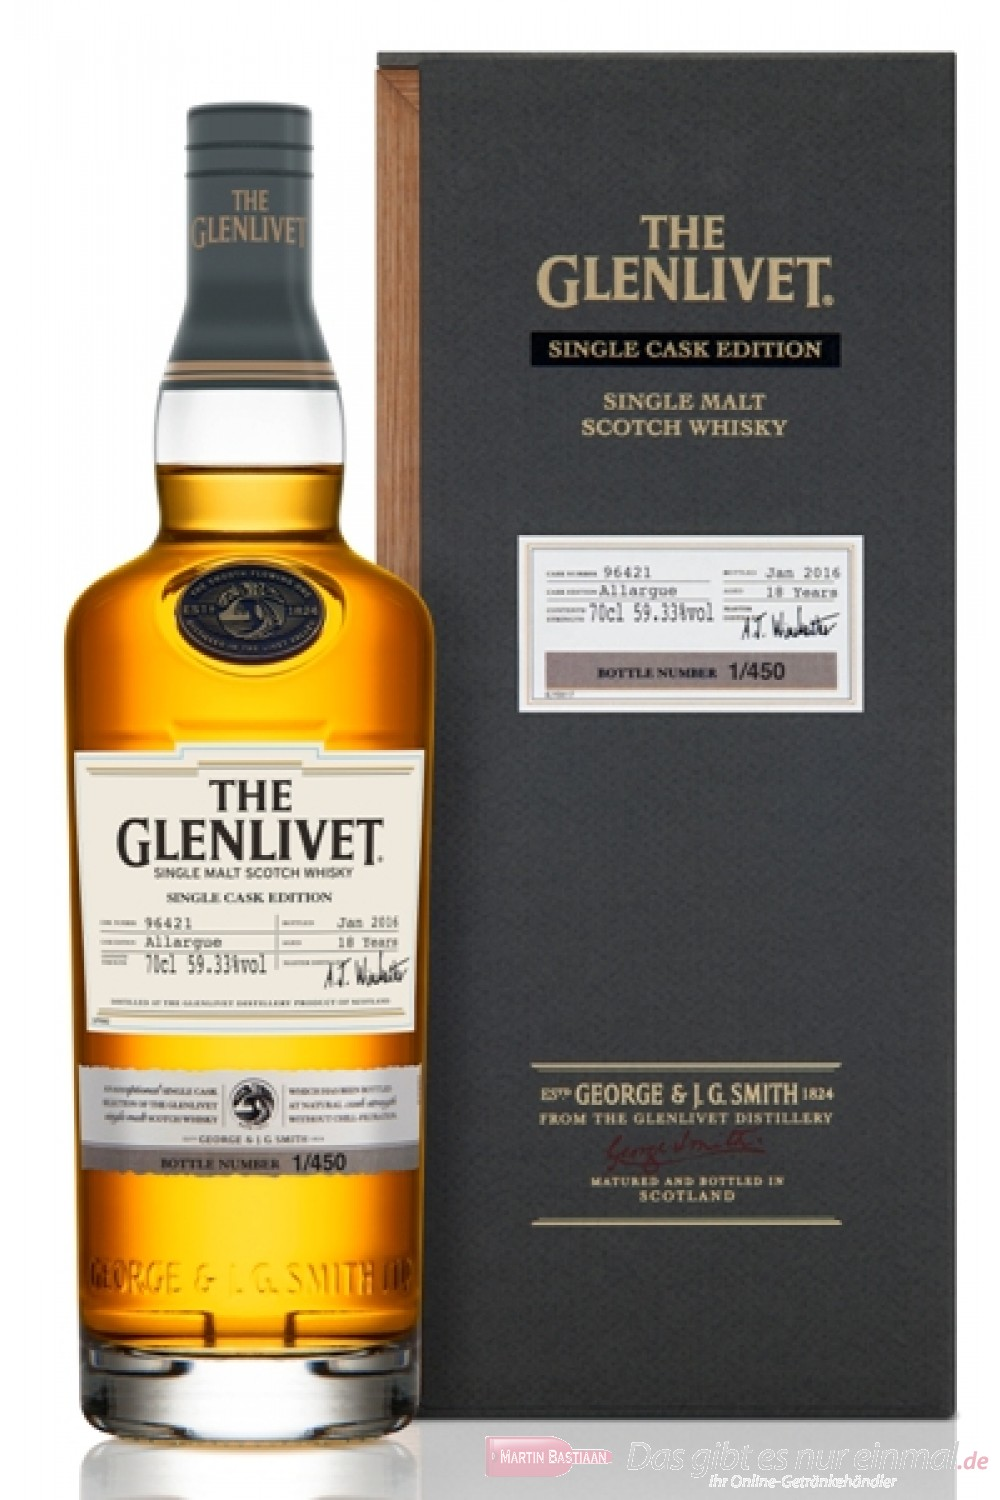 The Glenlivet Single Cask